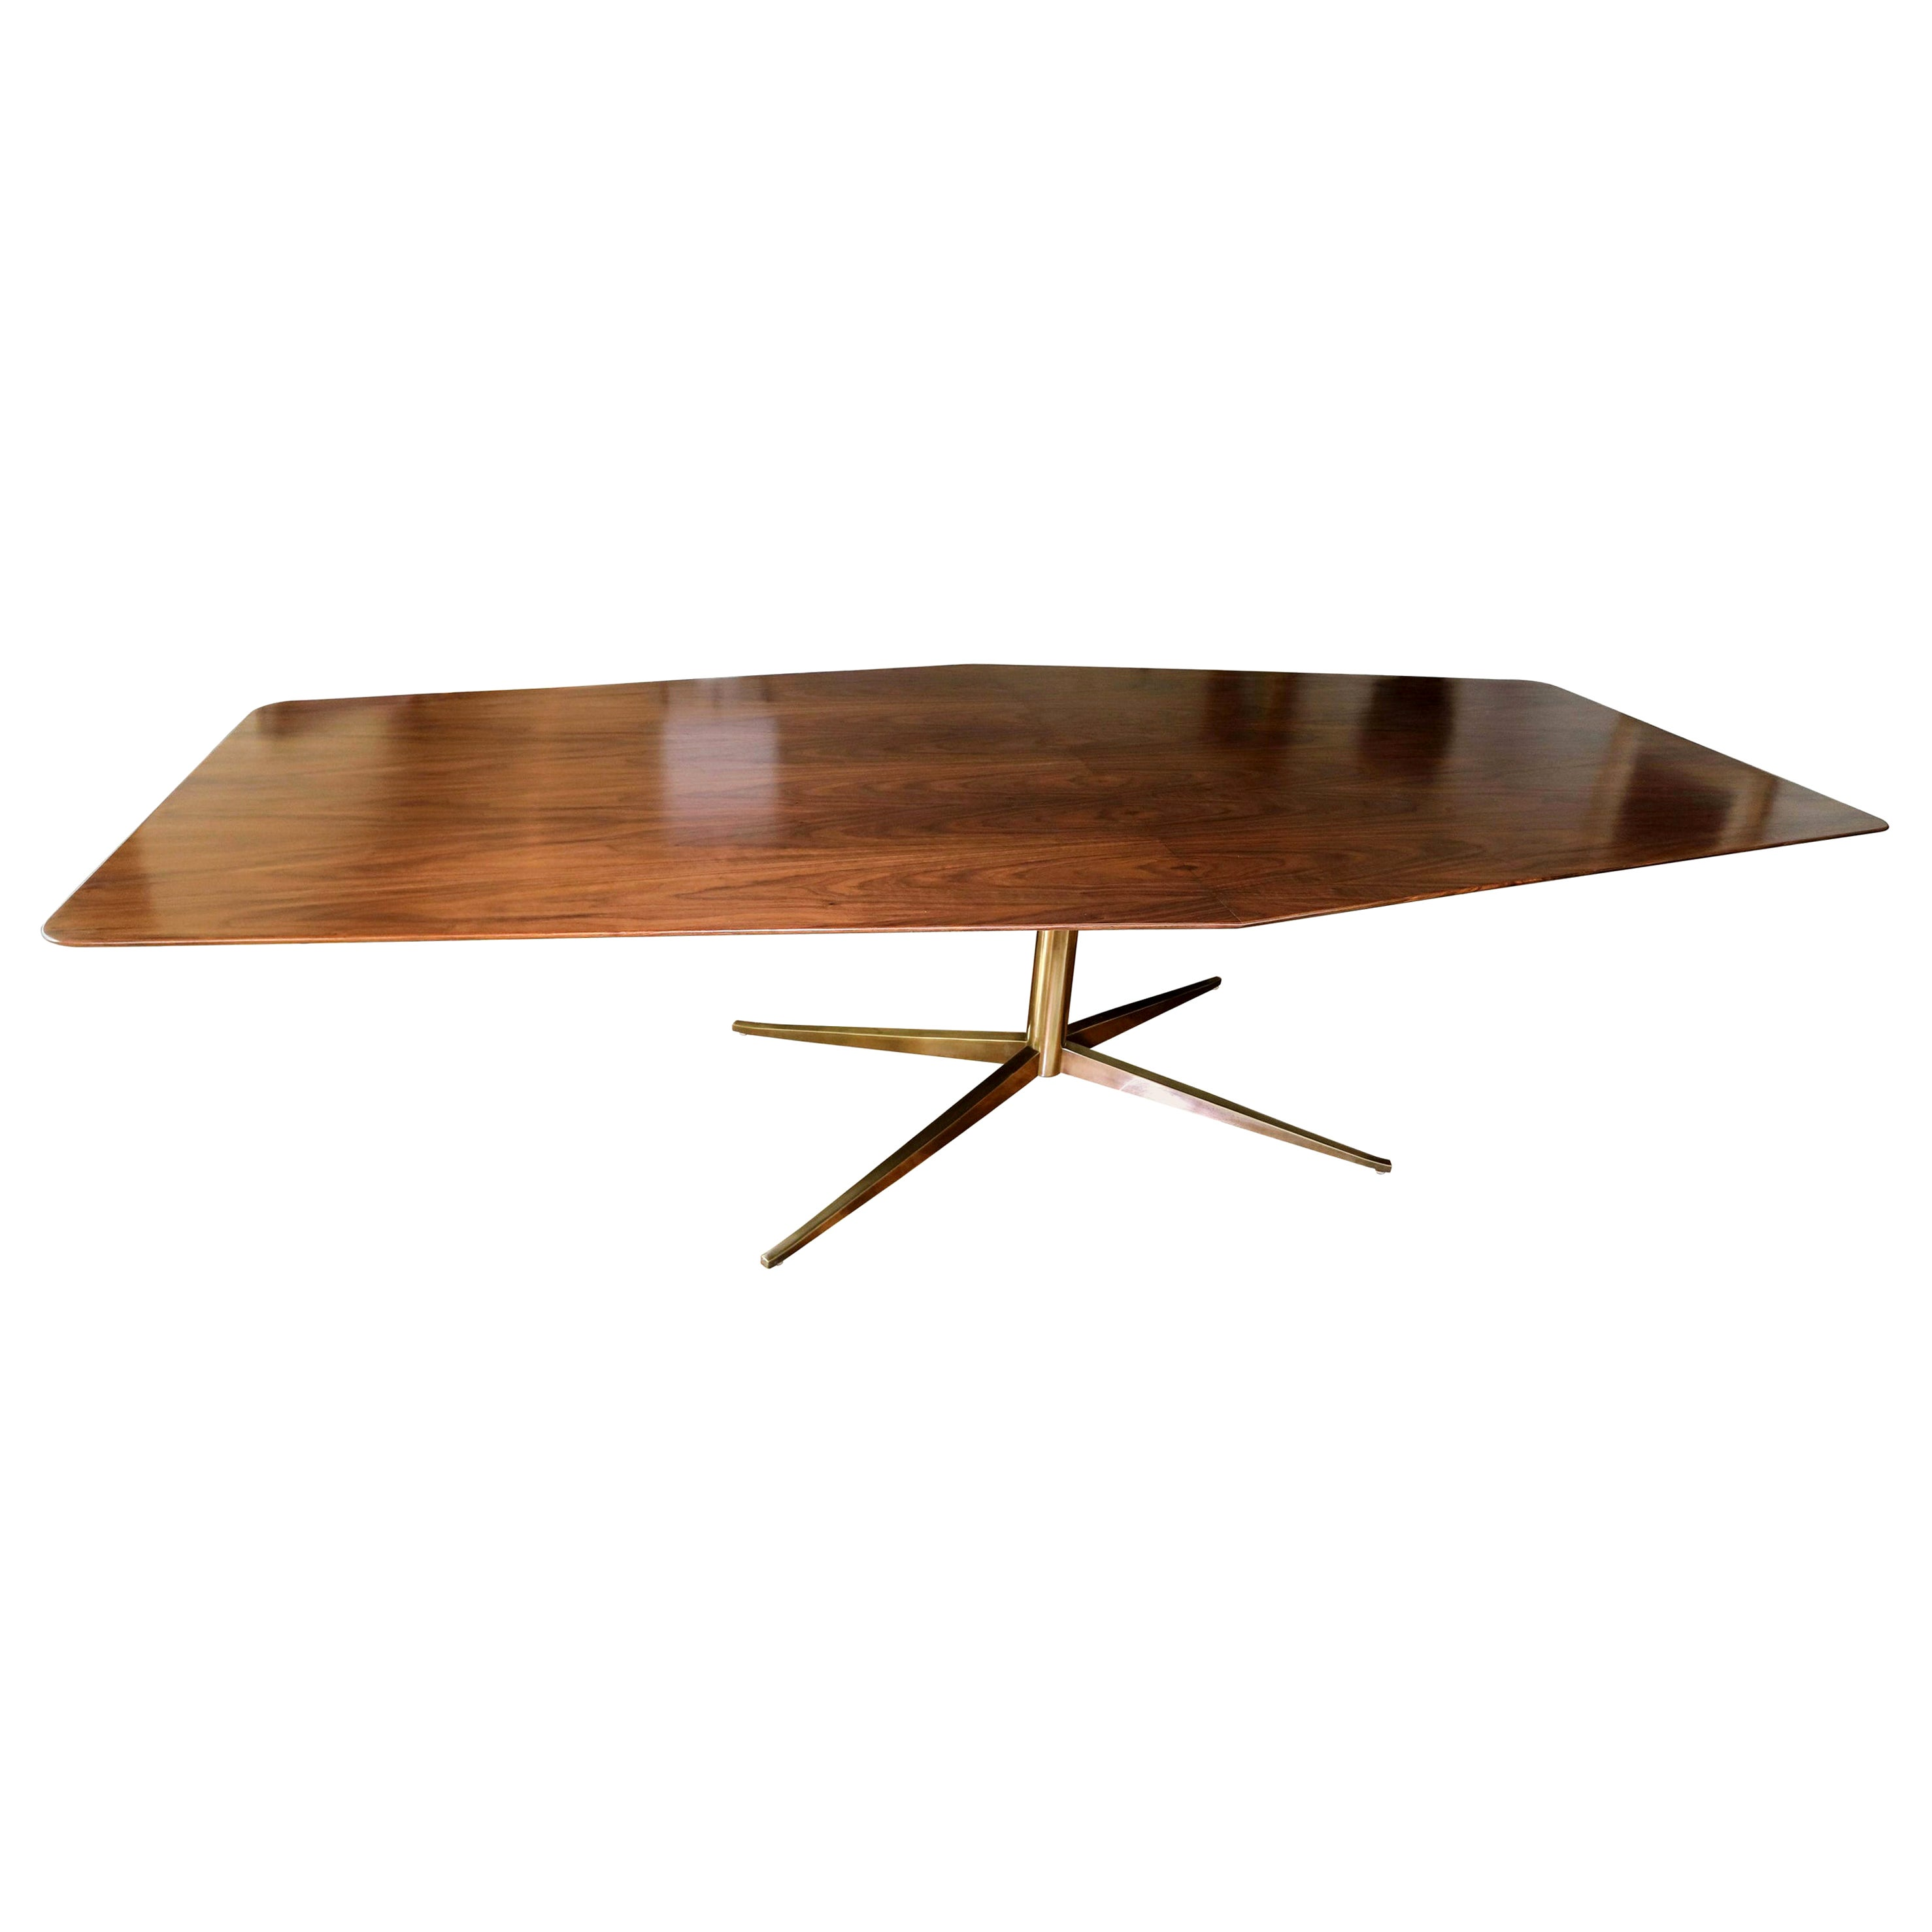 Custom Walnut Rectangular Pedestal Dining Table with Brass Leg by Adesso Imports